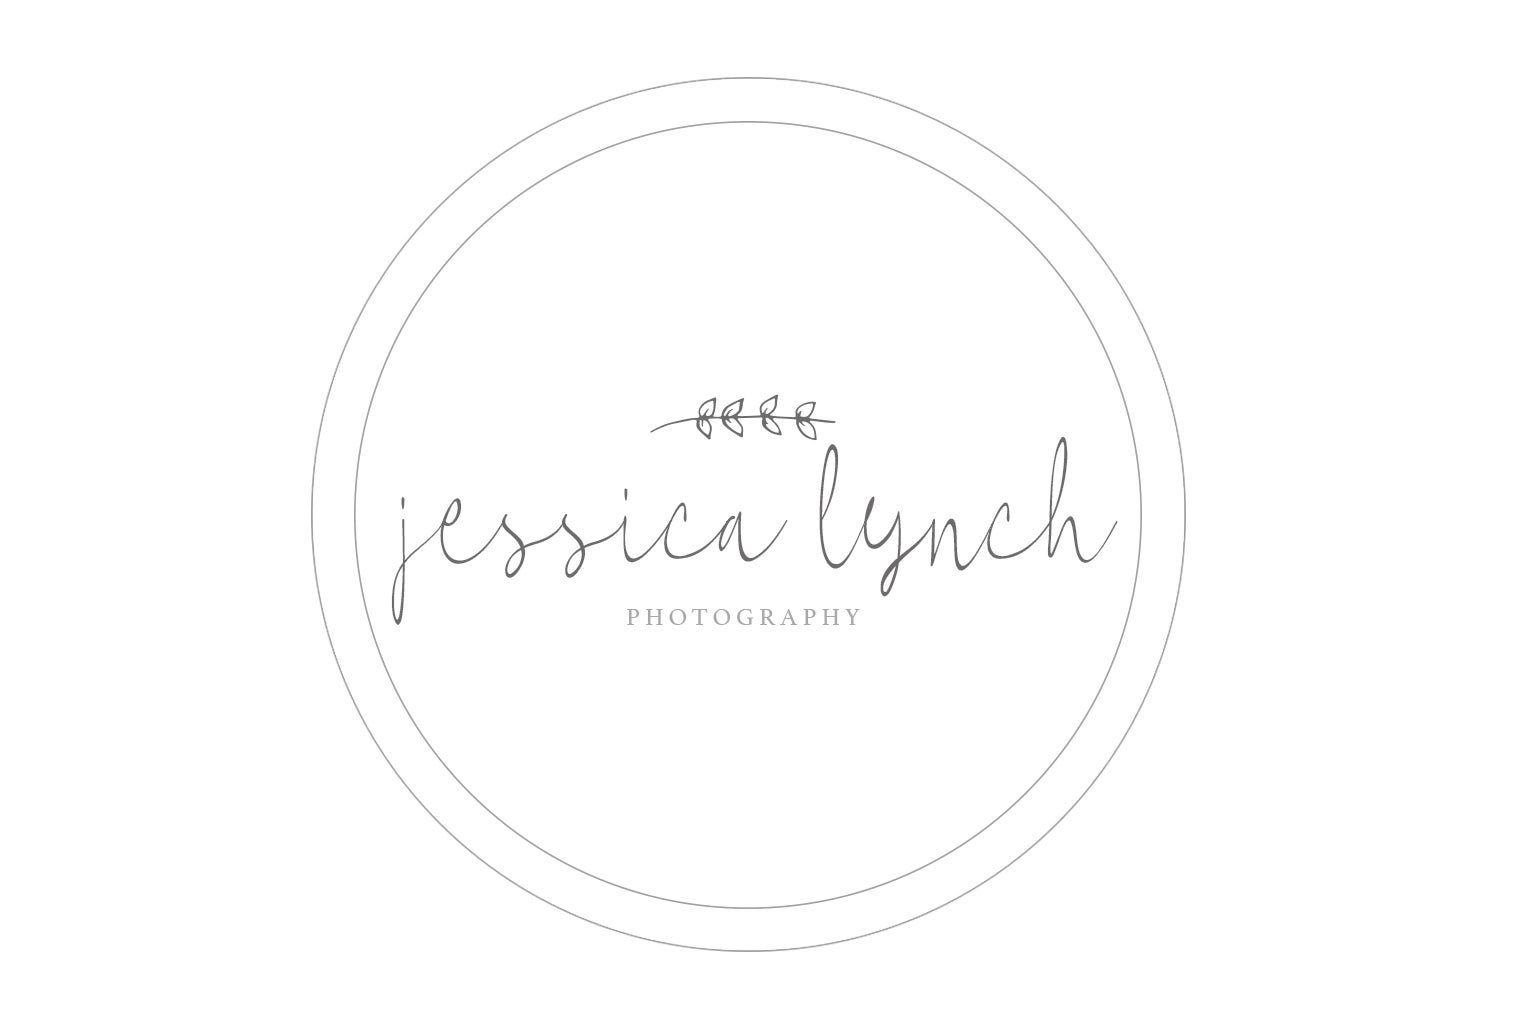 Jessica Lynch Photography